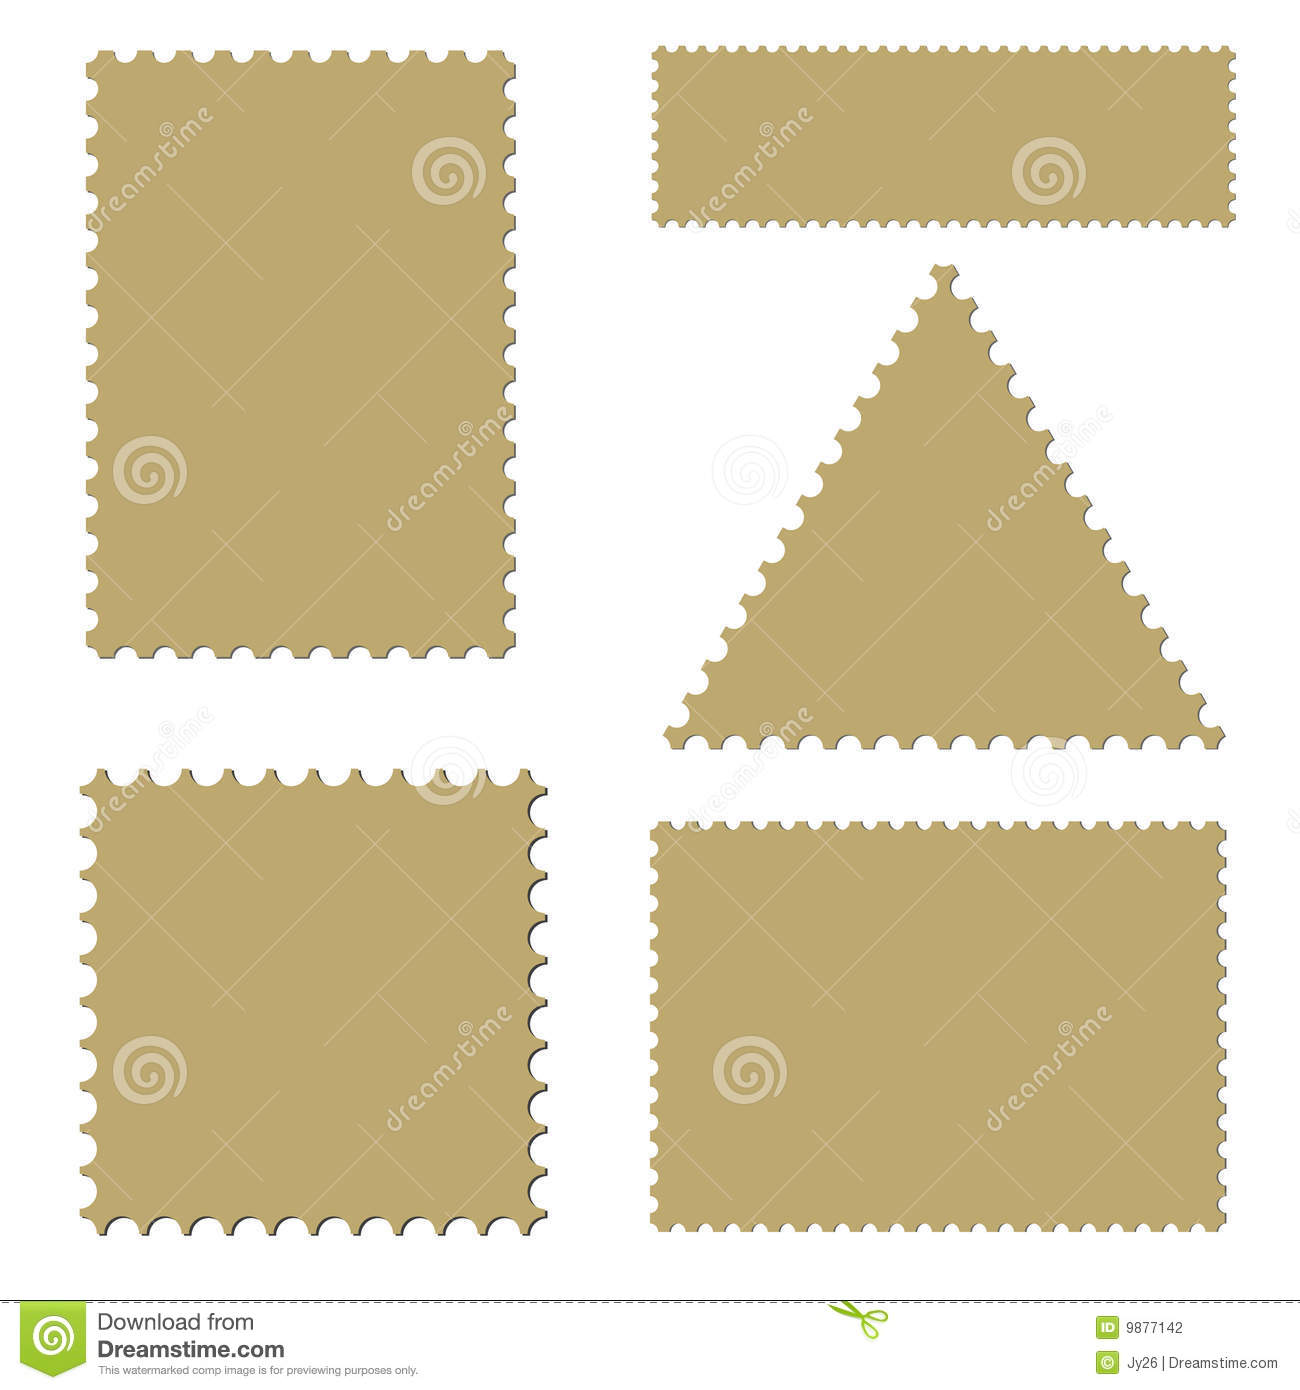 Postage template set (vector)